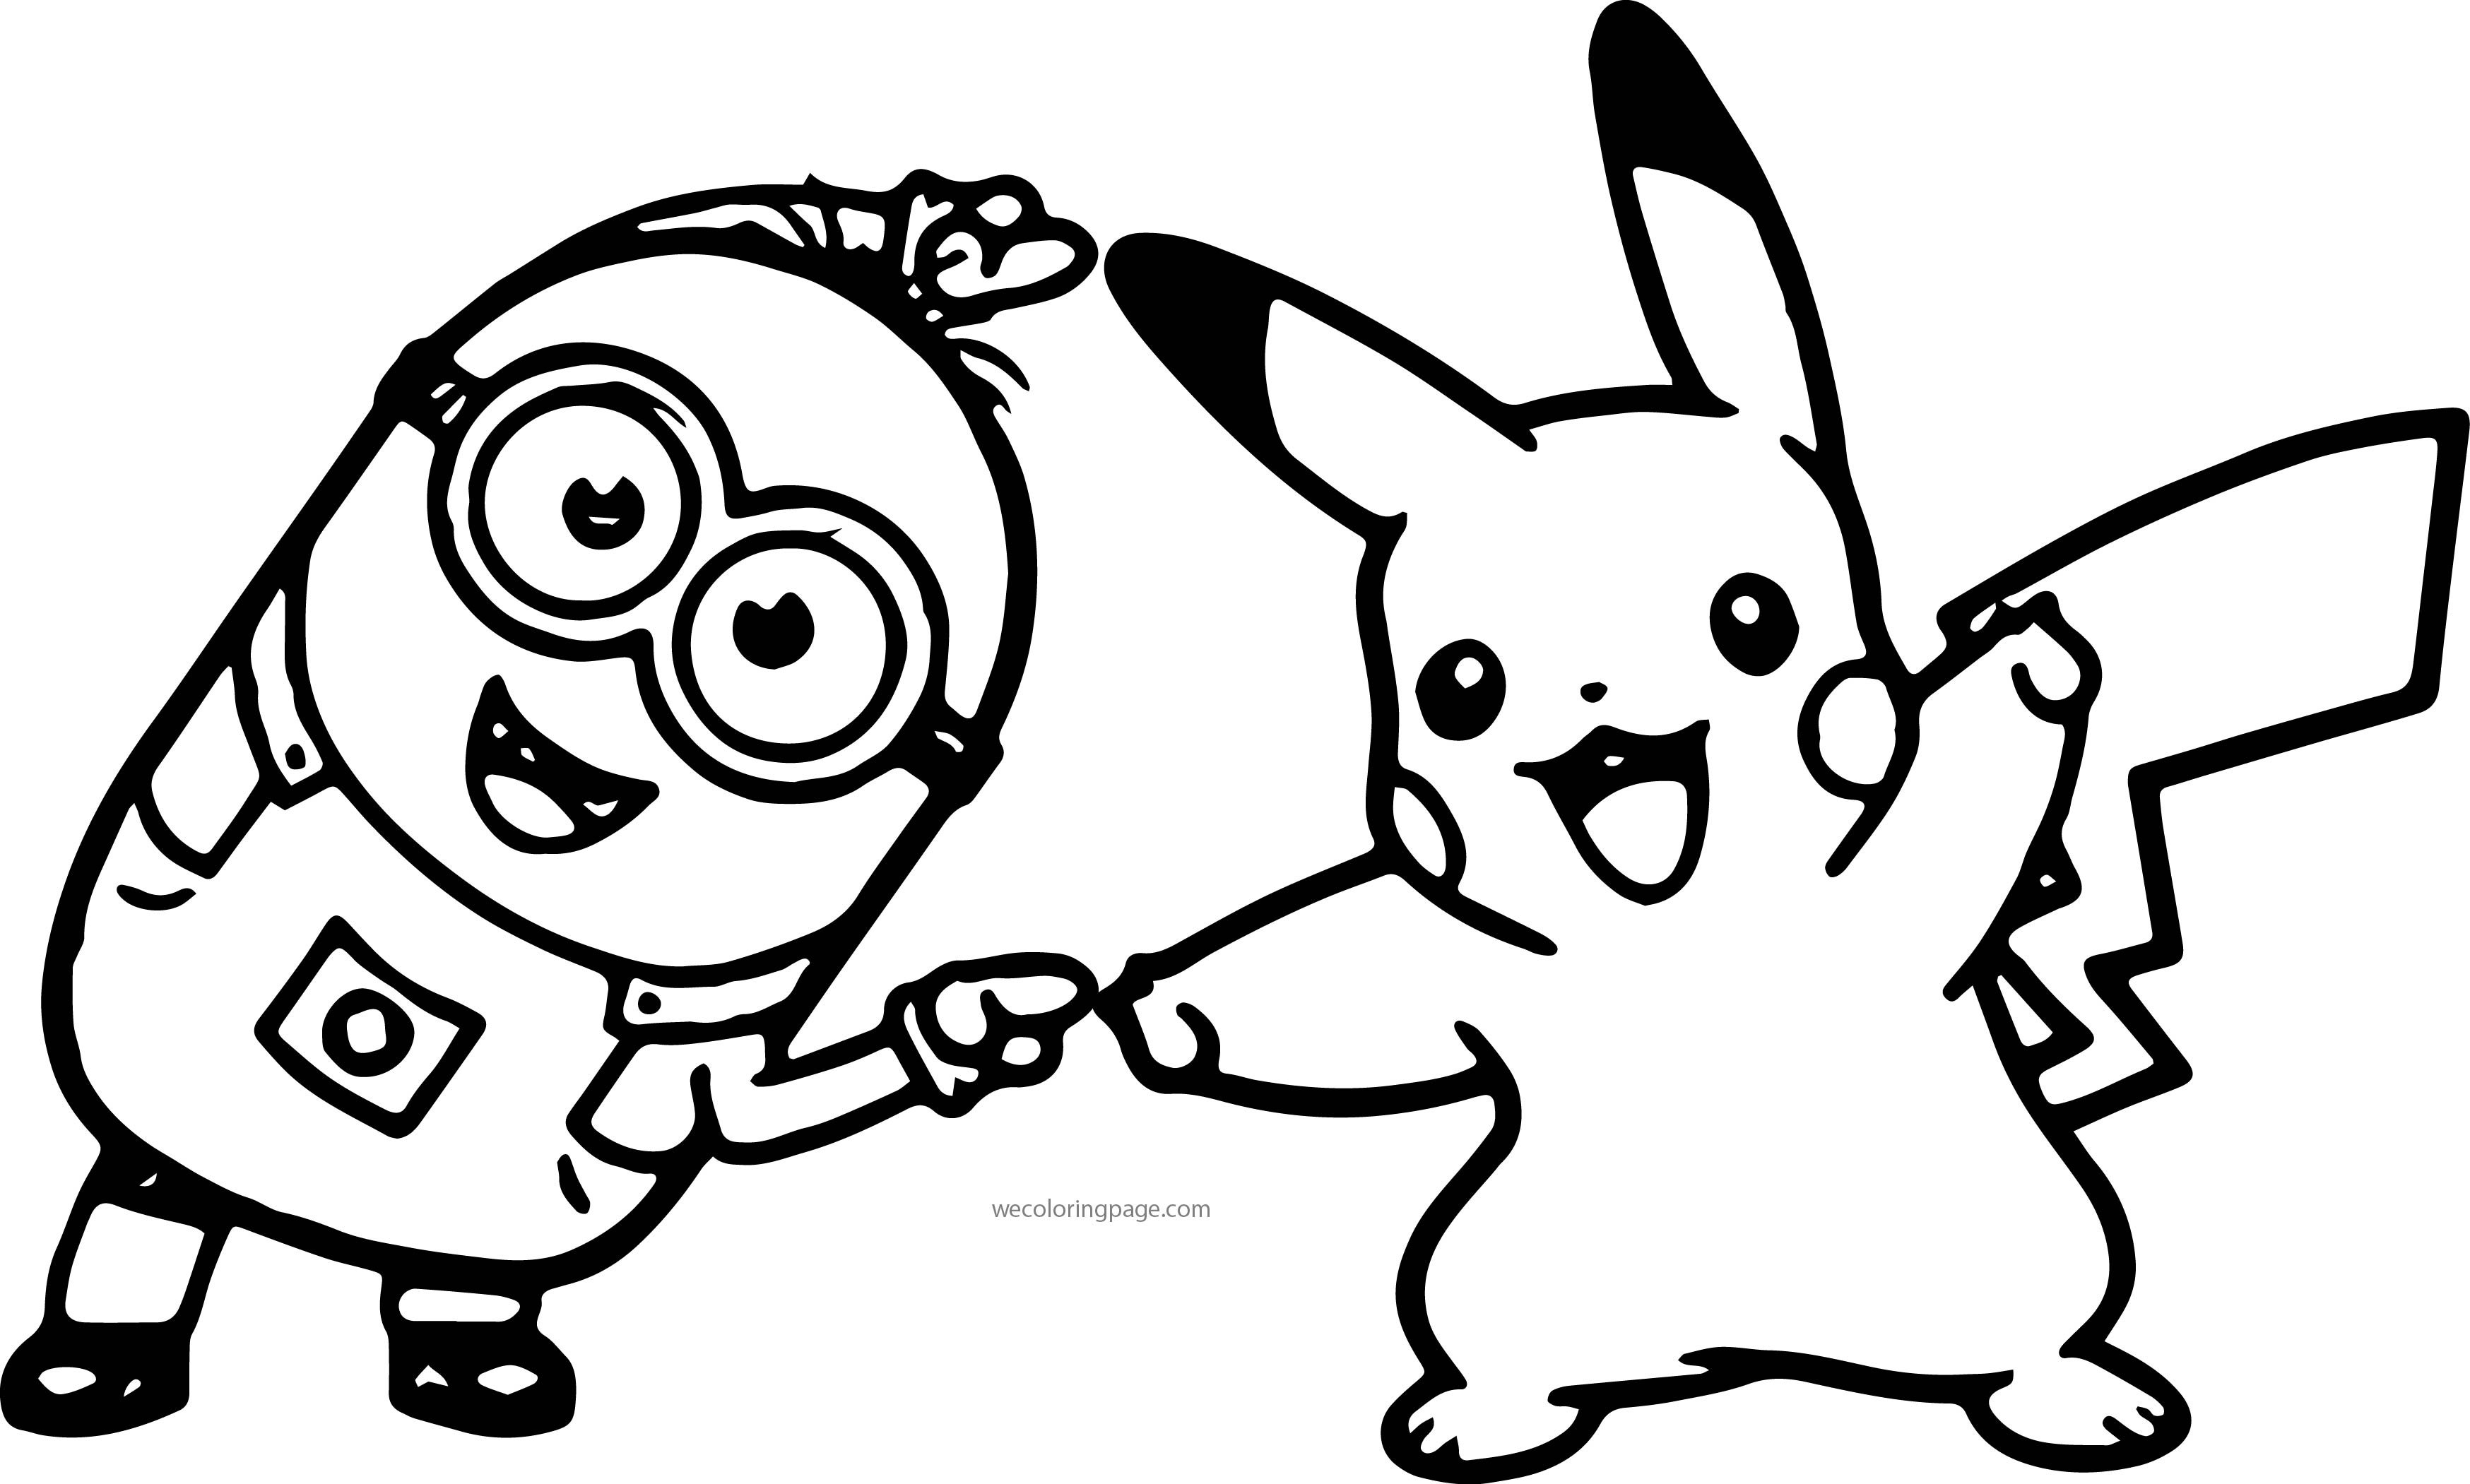 Minion pikachu dance pokemon coloring page for Pikachu coloring page